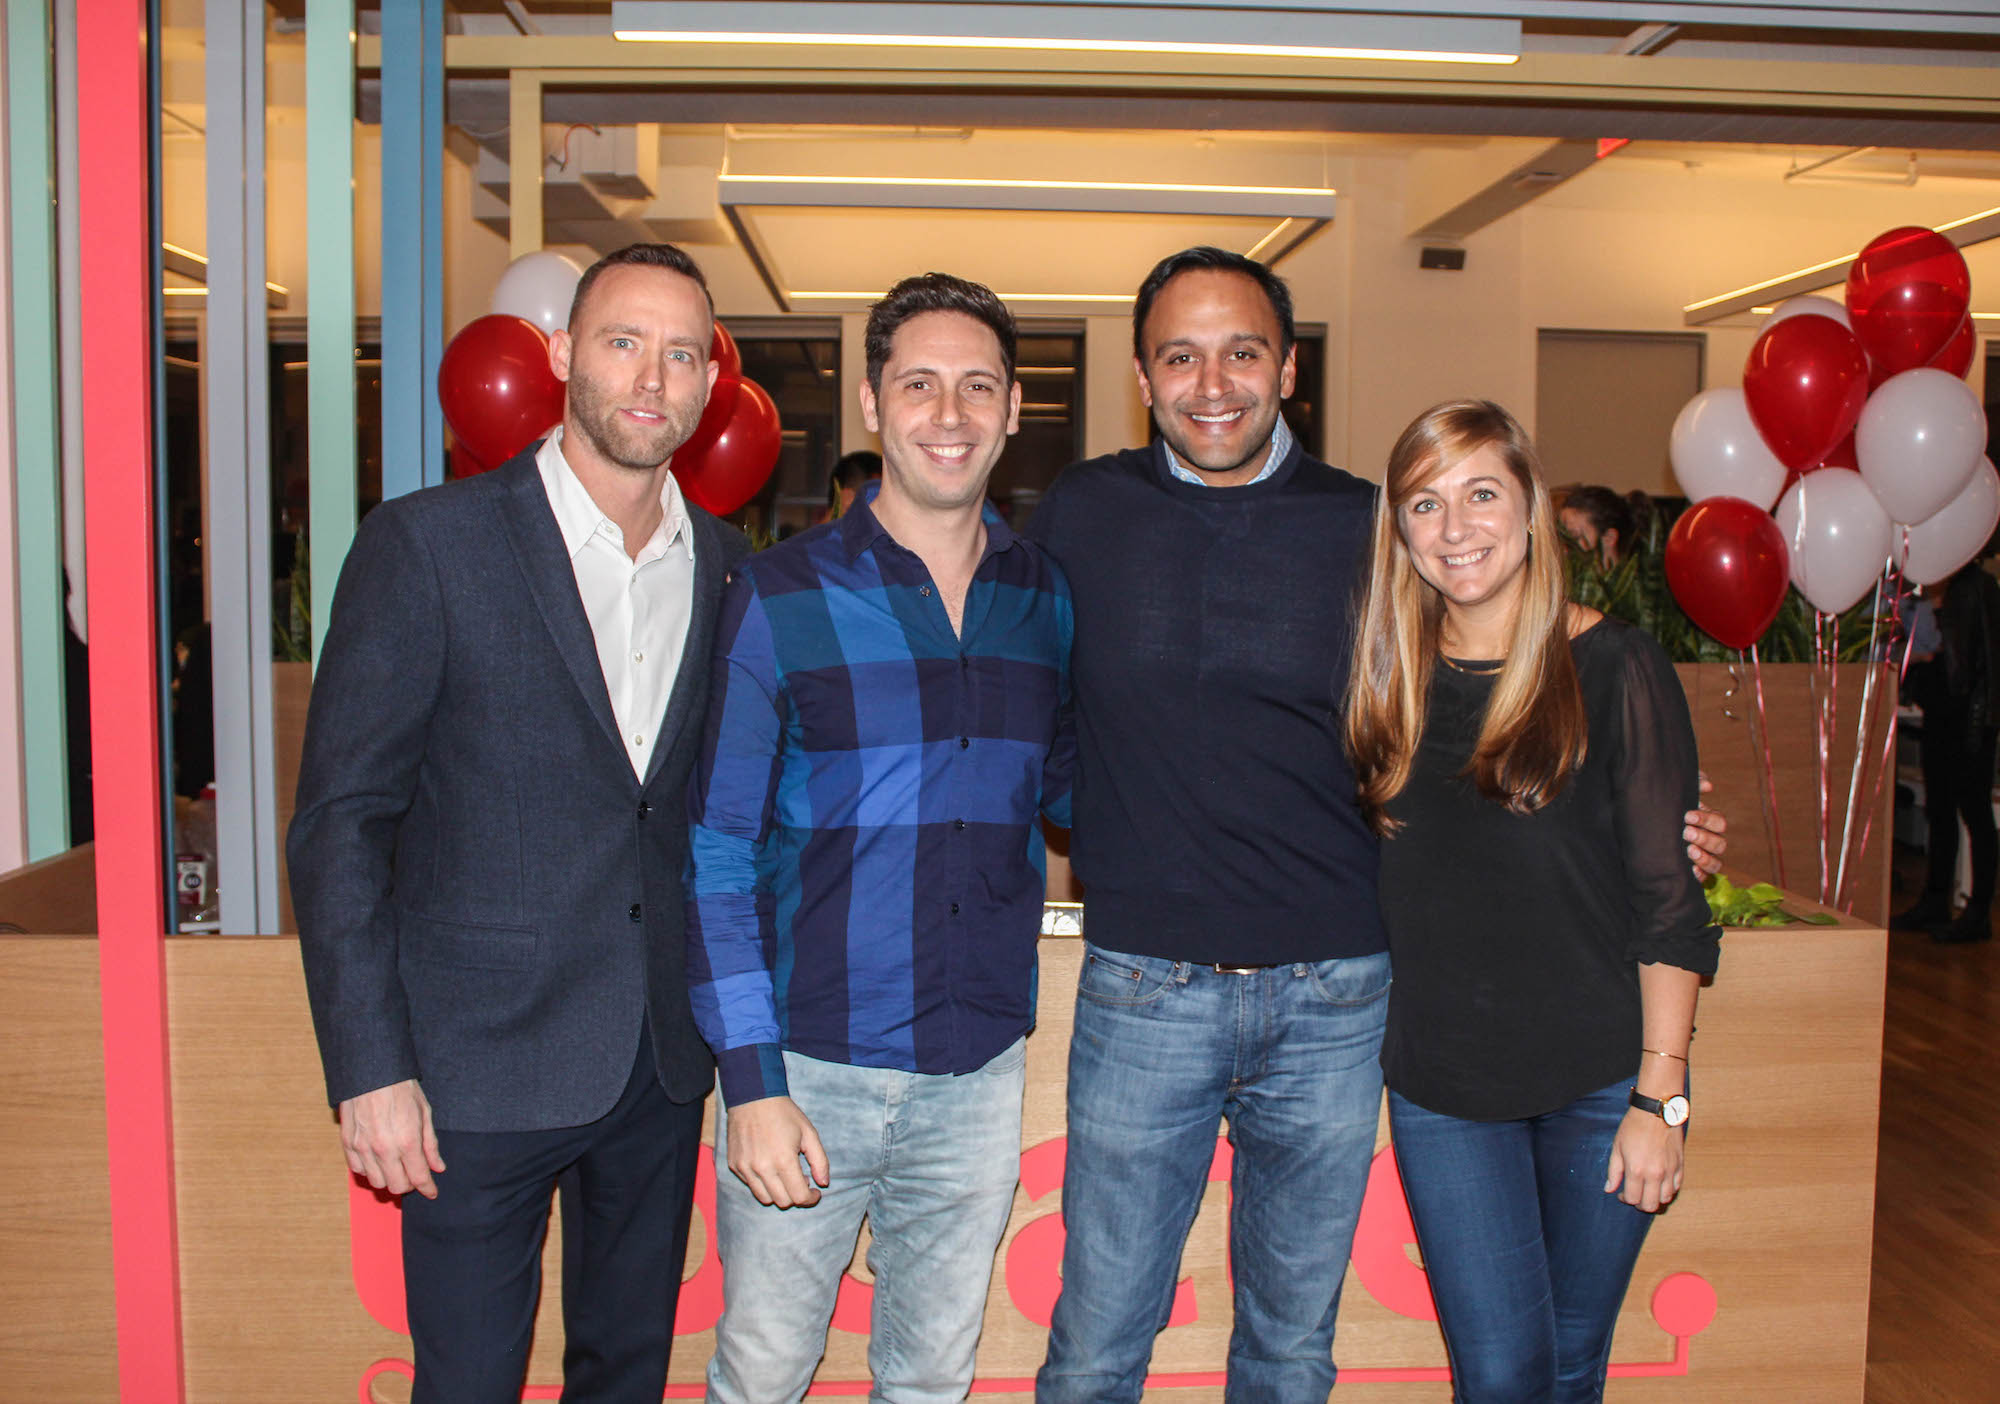 Ryan Hubbard, David Greenberg, Raj Doshi, and Lindsey Dole at the opening of Updater's Union Square office in 2017.